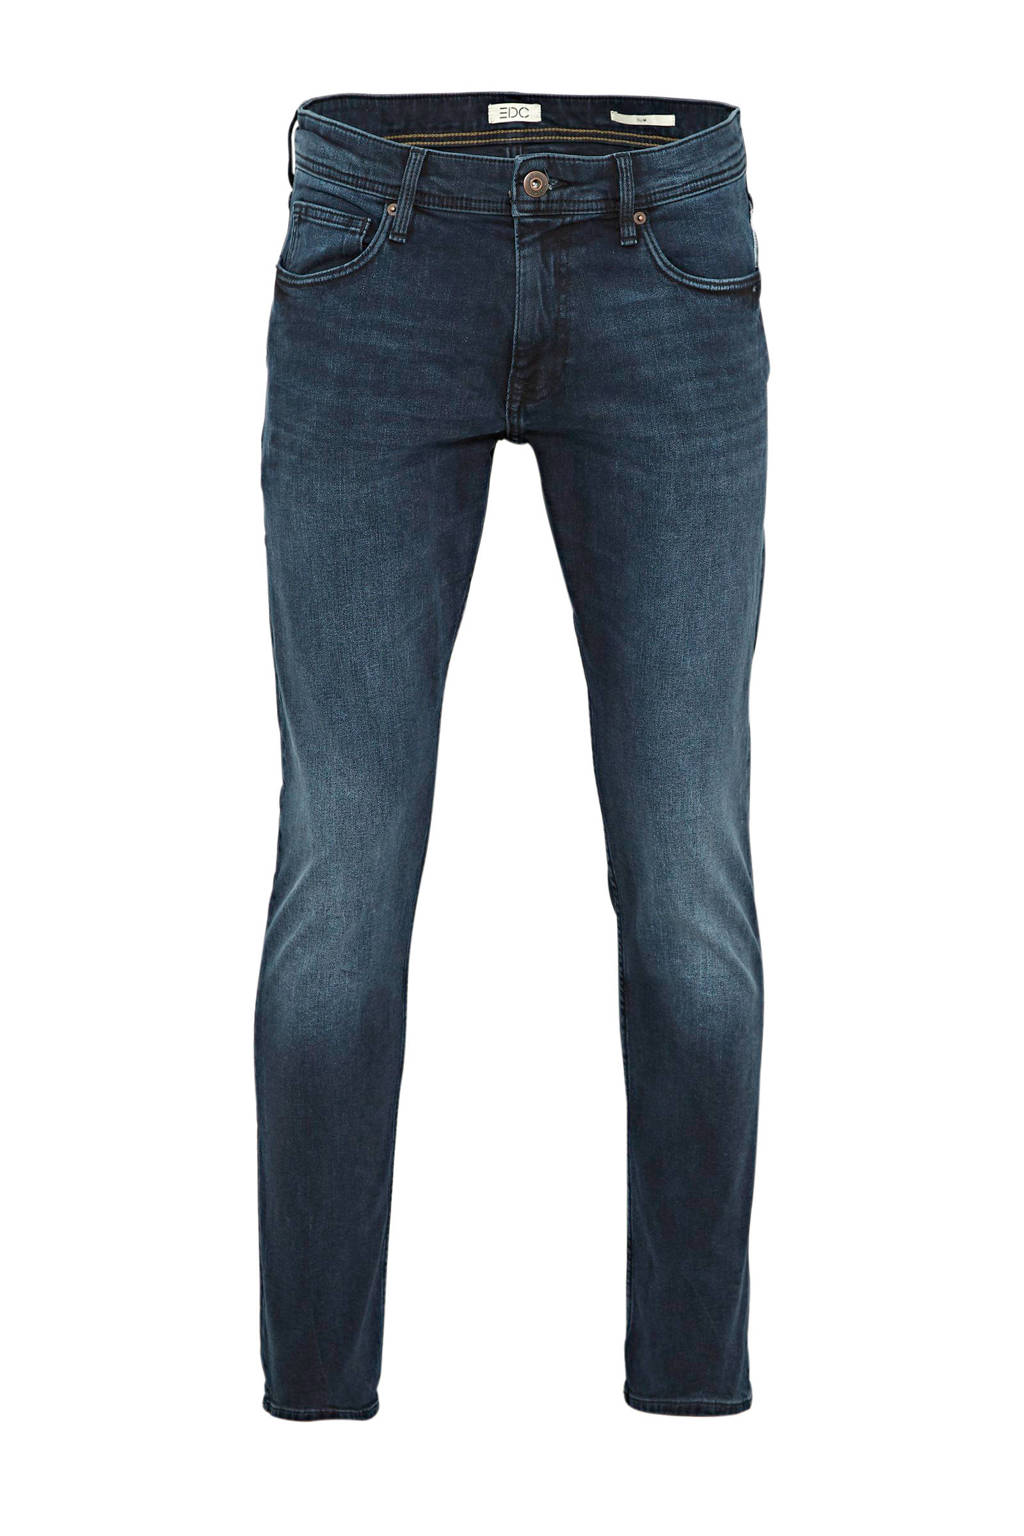 edc Men slim fit jeans dark denim, Dark denim